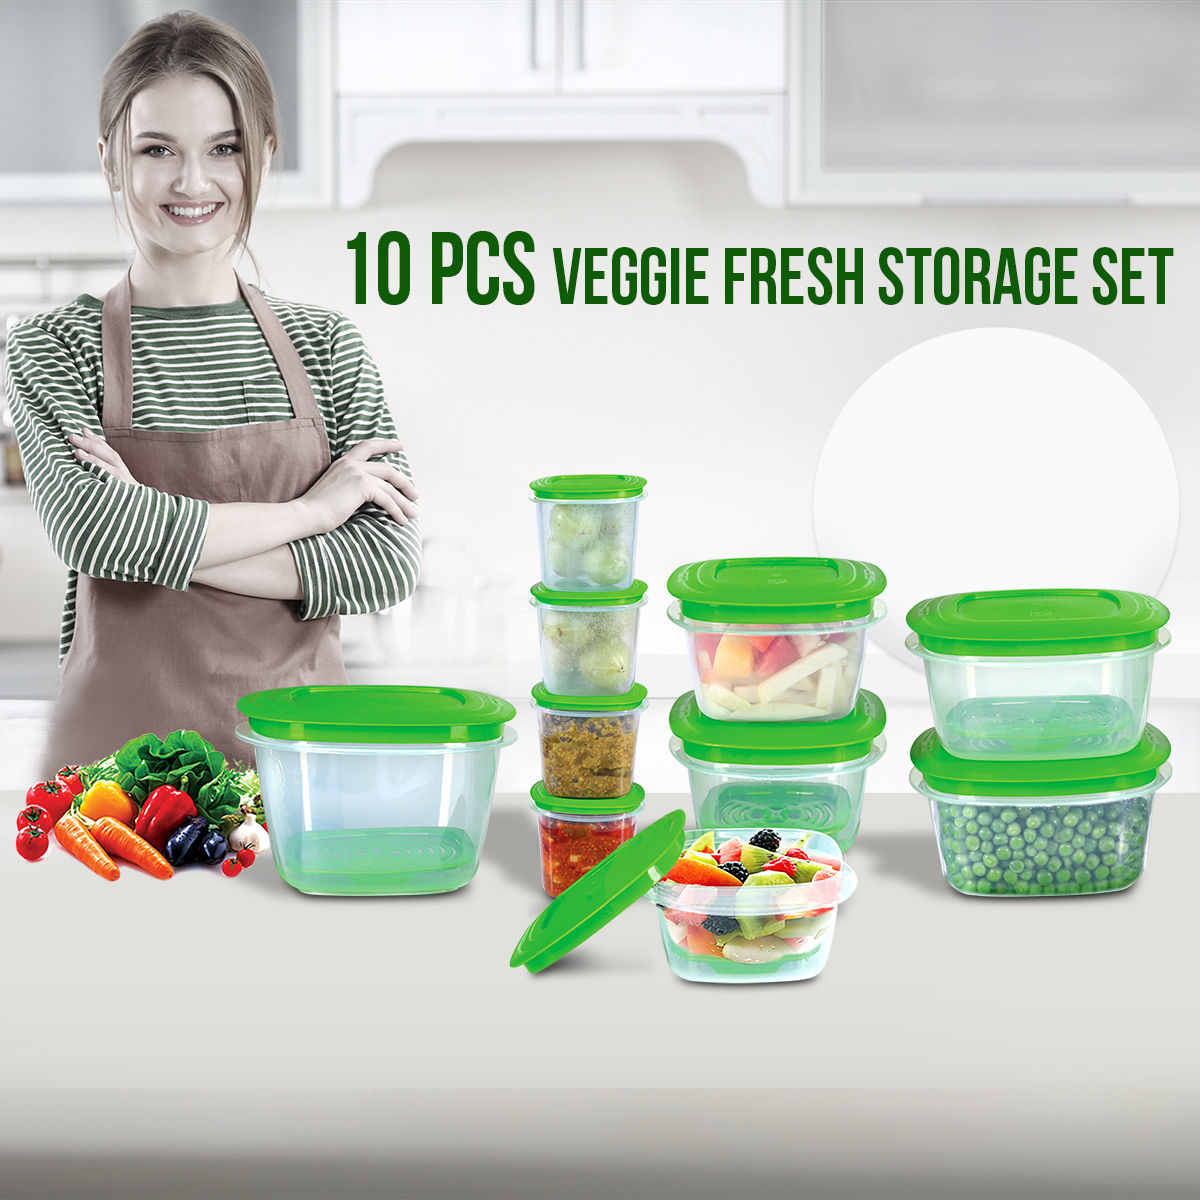 Buy 10 Pcs Veggie Fresh Storage Set Online At Best Price In India On